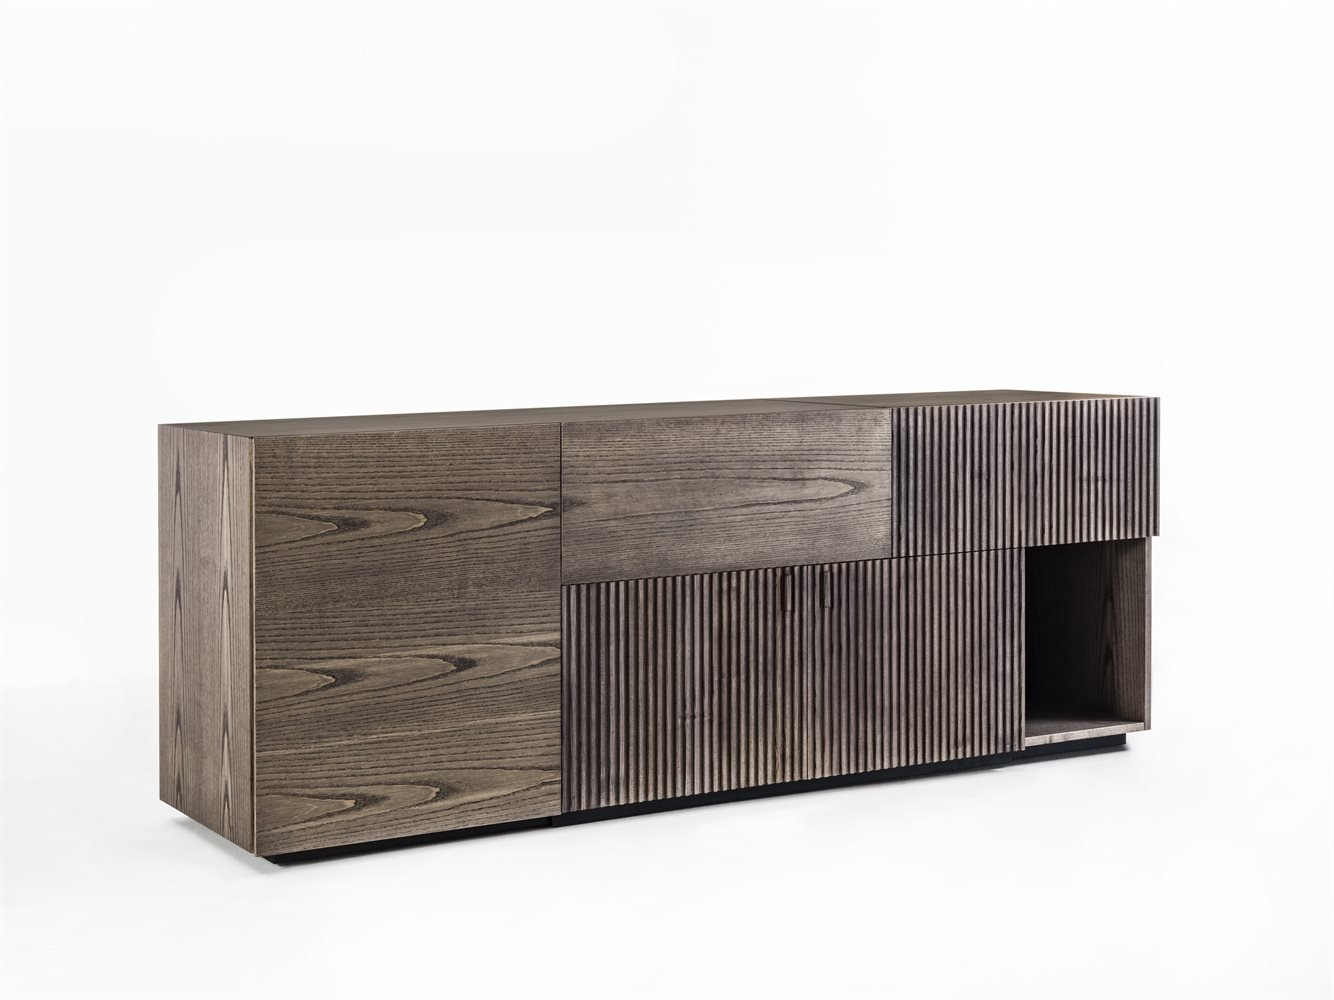 Drift Extendable Sideboard from Porada, designed by M. Marconato and T. Zappa